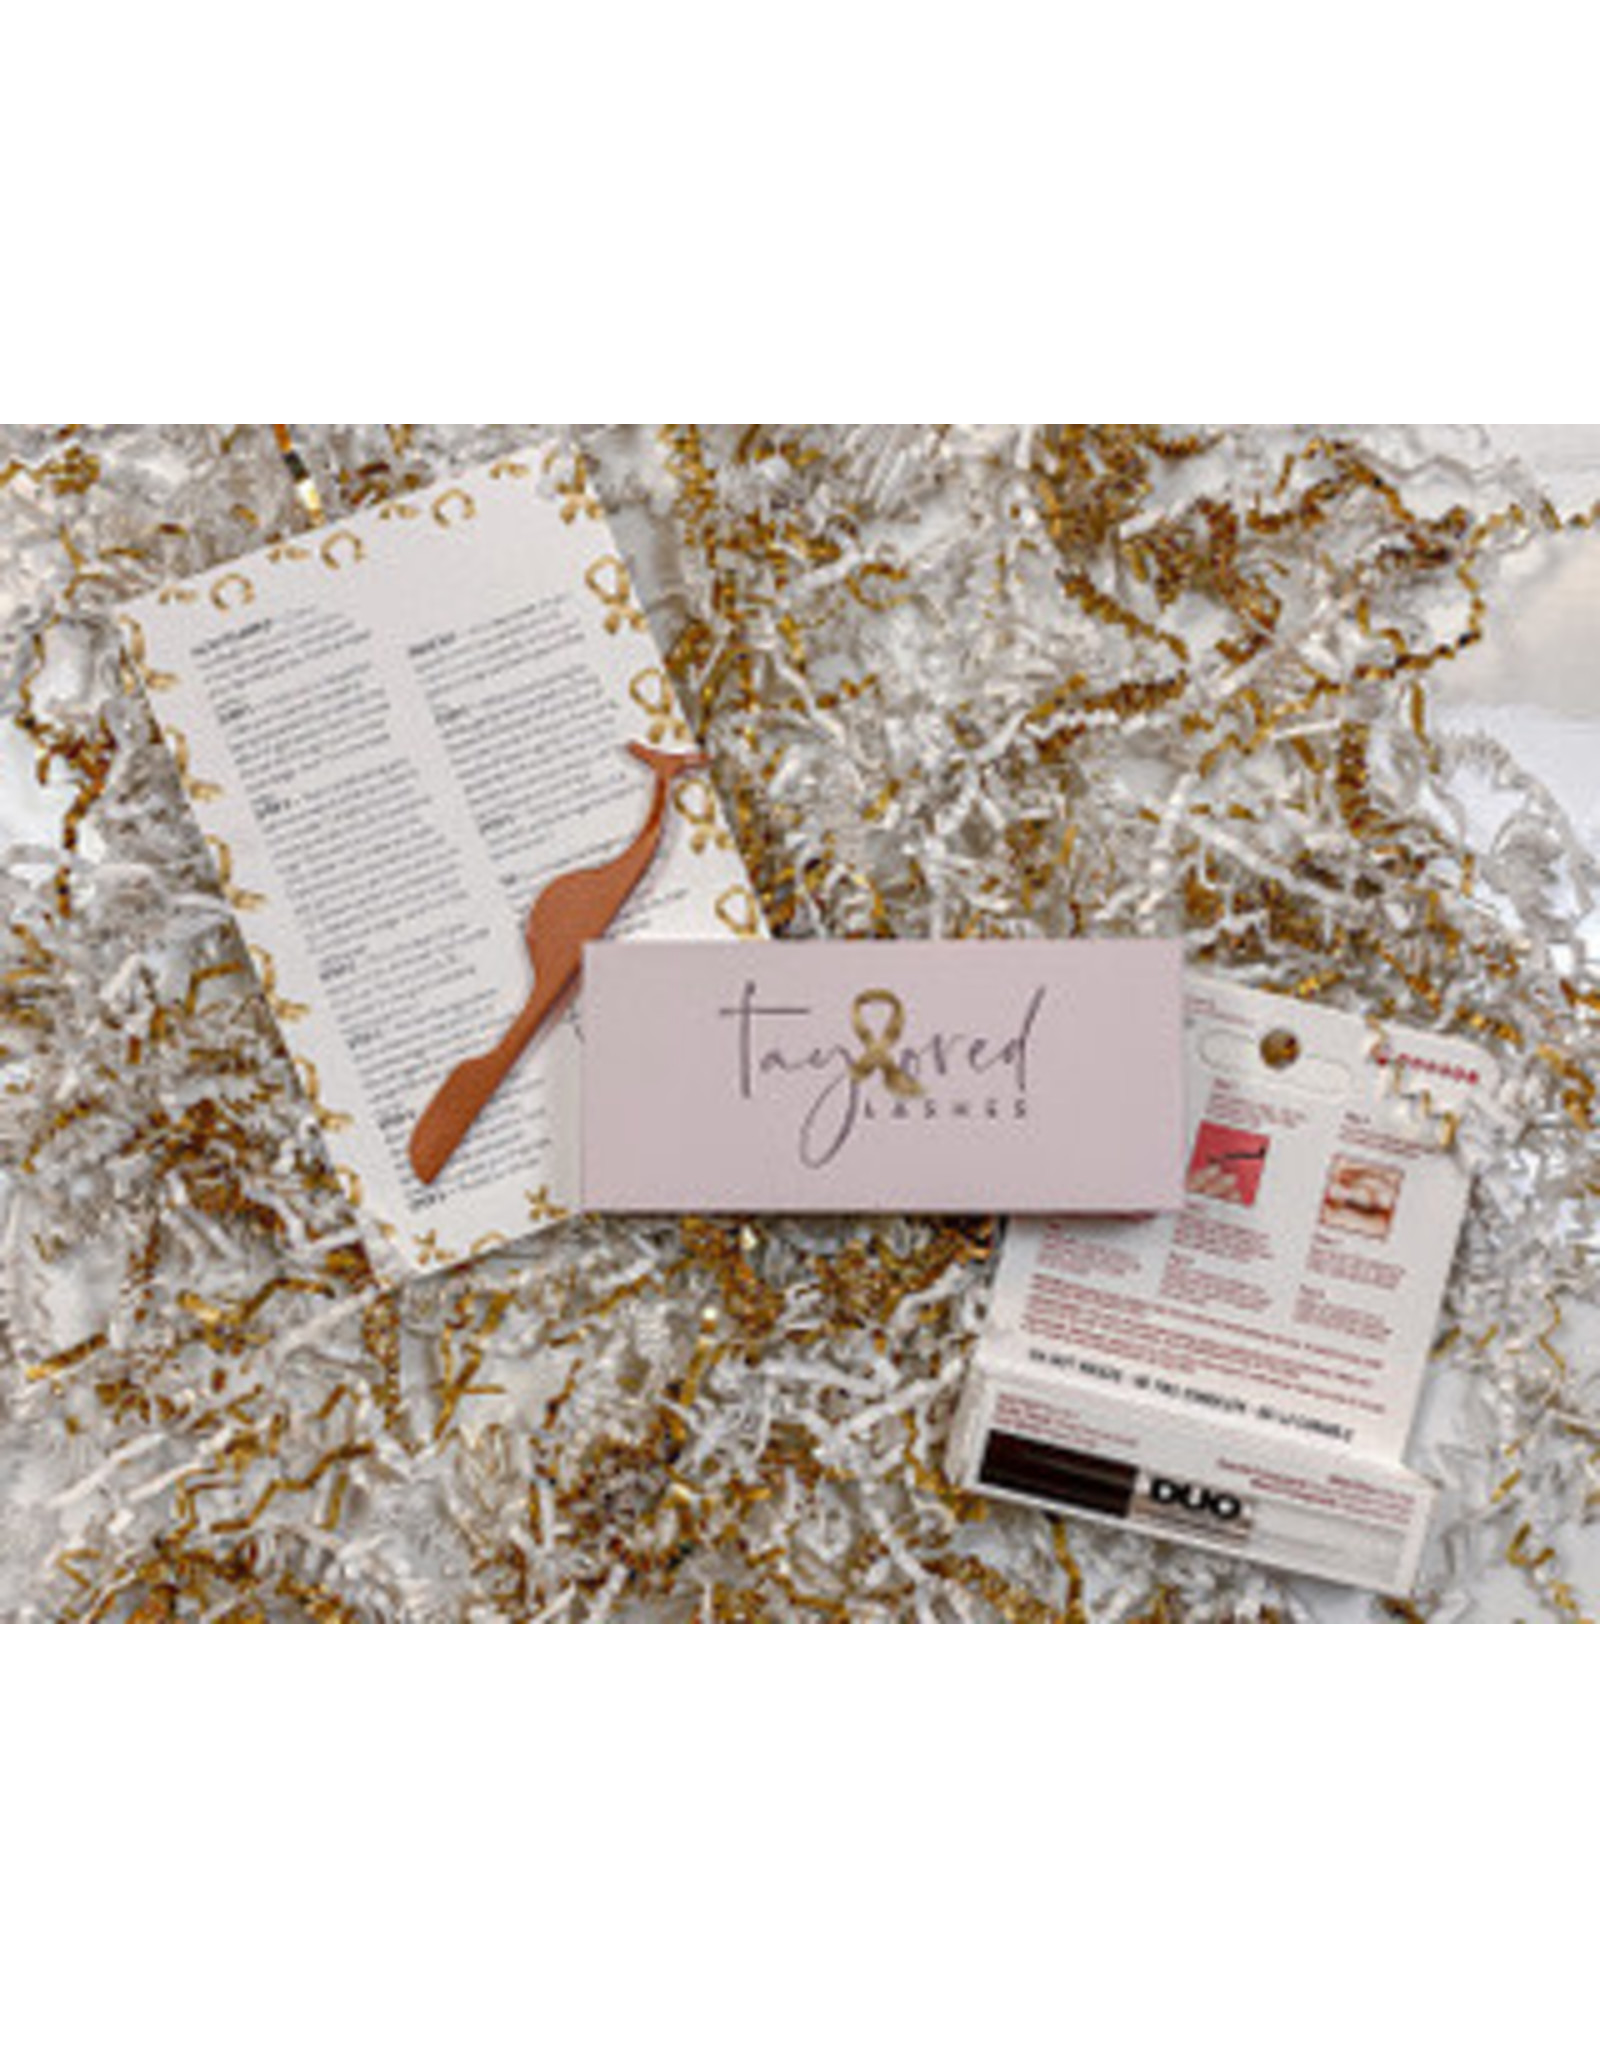 Taylored Lashes April 25th Gift Set